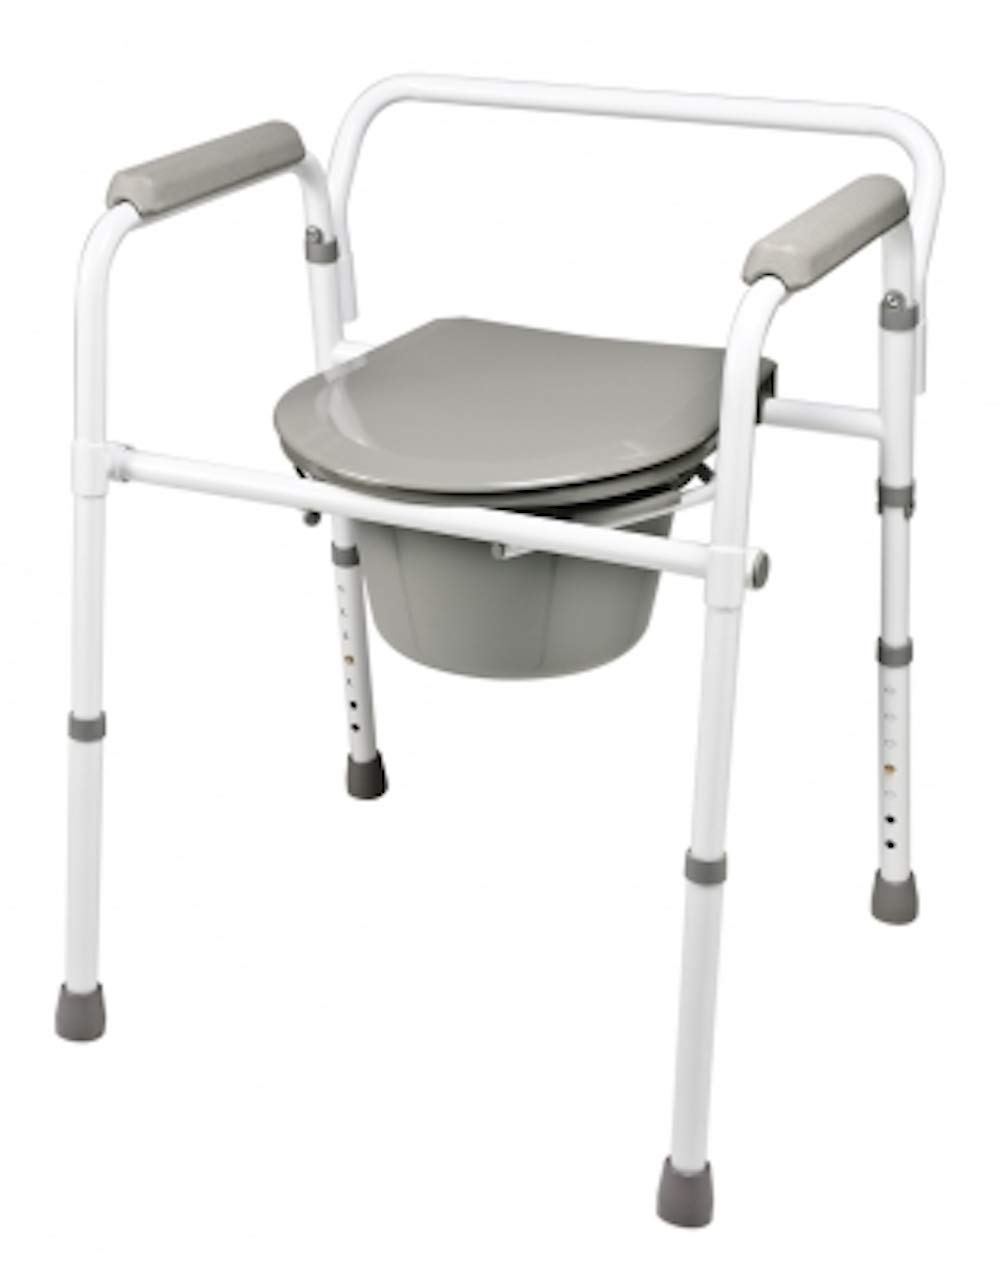 Pivit Elongated Folding 3-in-1 Bedside Commode Chair for Adults & Seniors | Heavy-Duty Steel | Tool-Free Adult Portable Potty Converts to Elevated Over-The-Toilet Seat Or Handicap Toilet Safety Frame